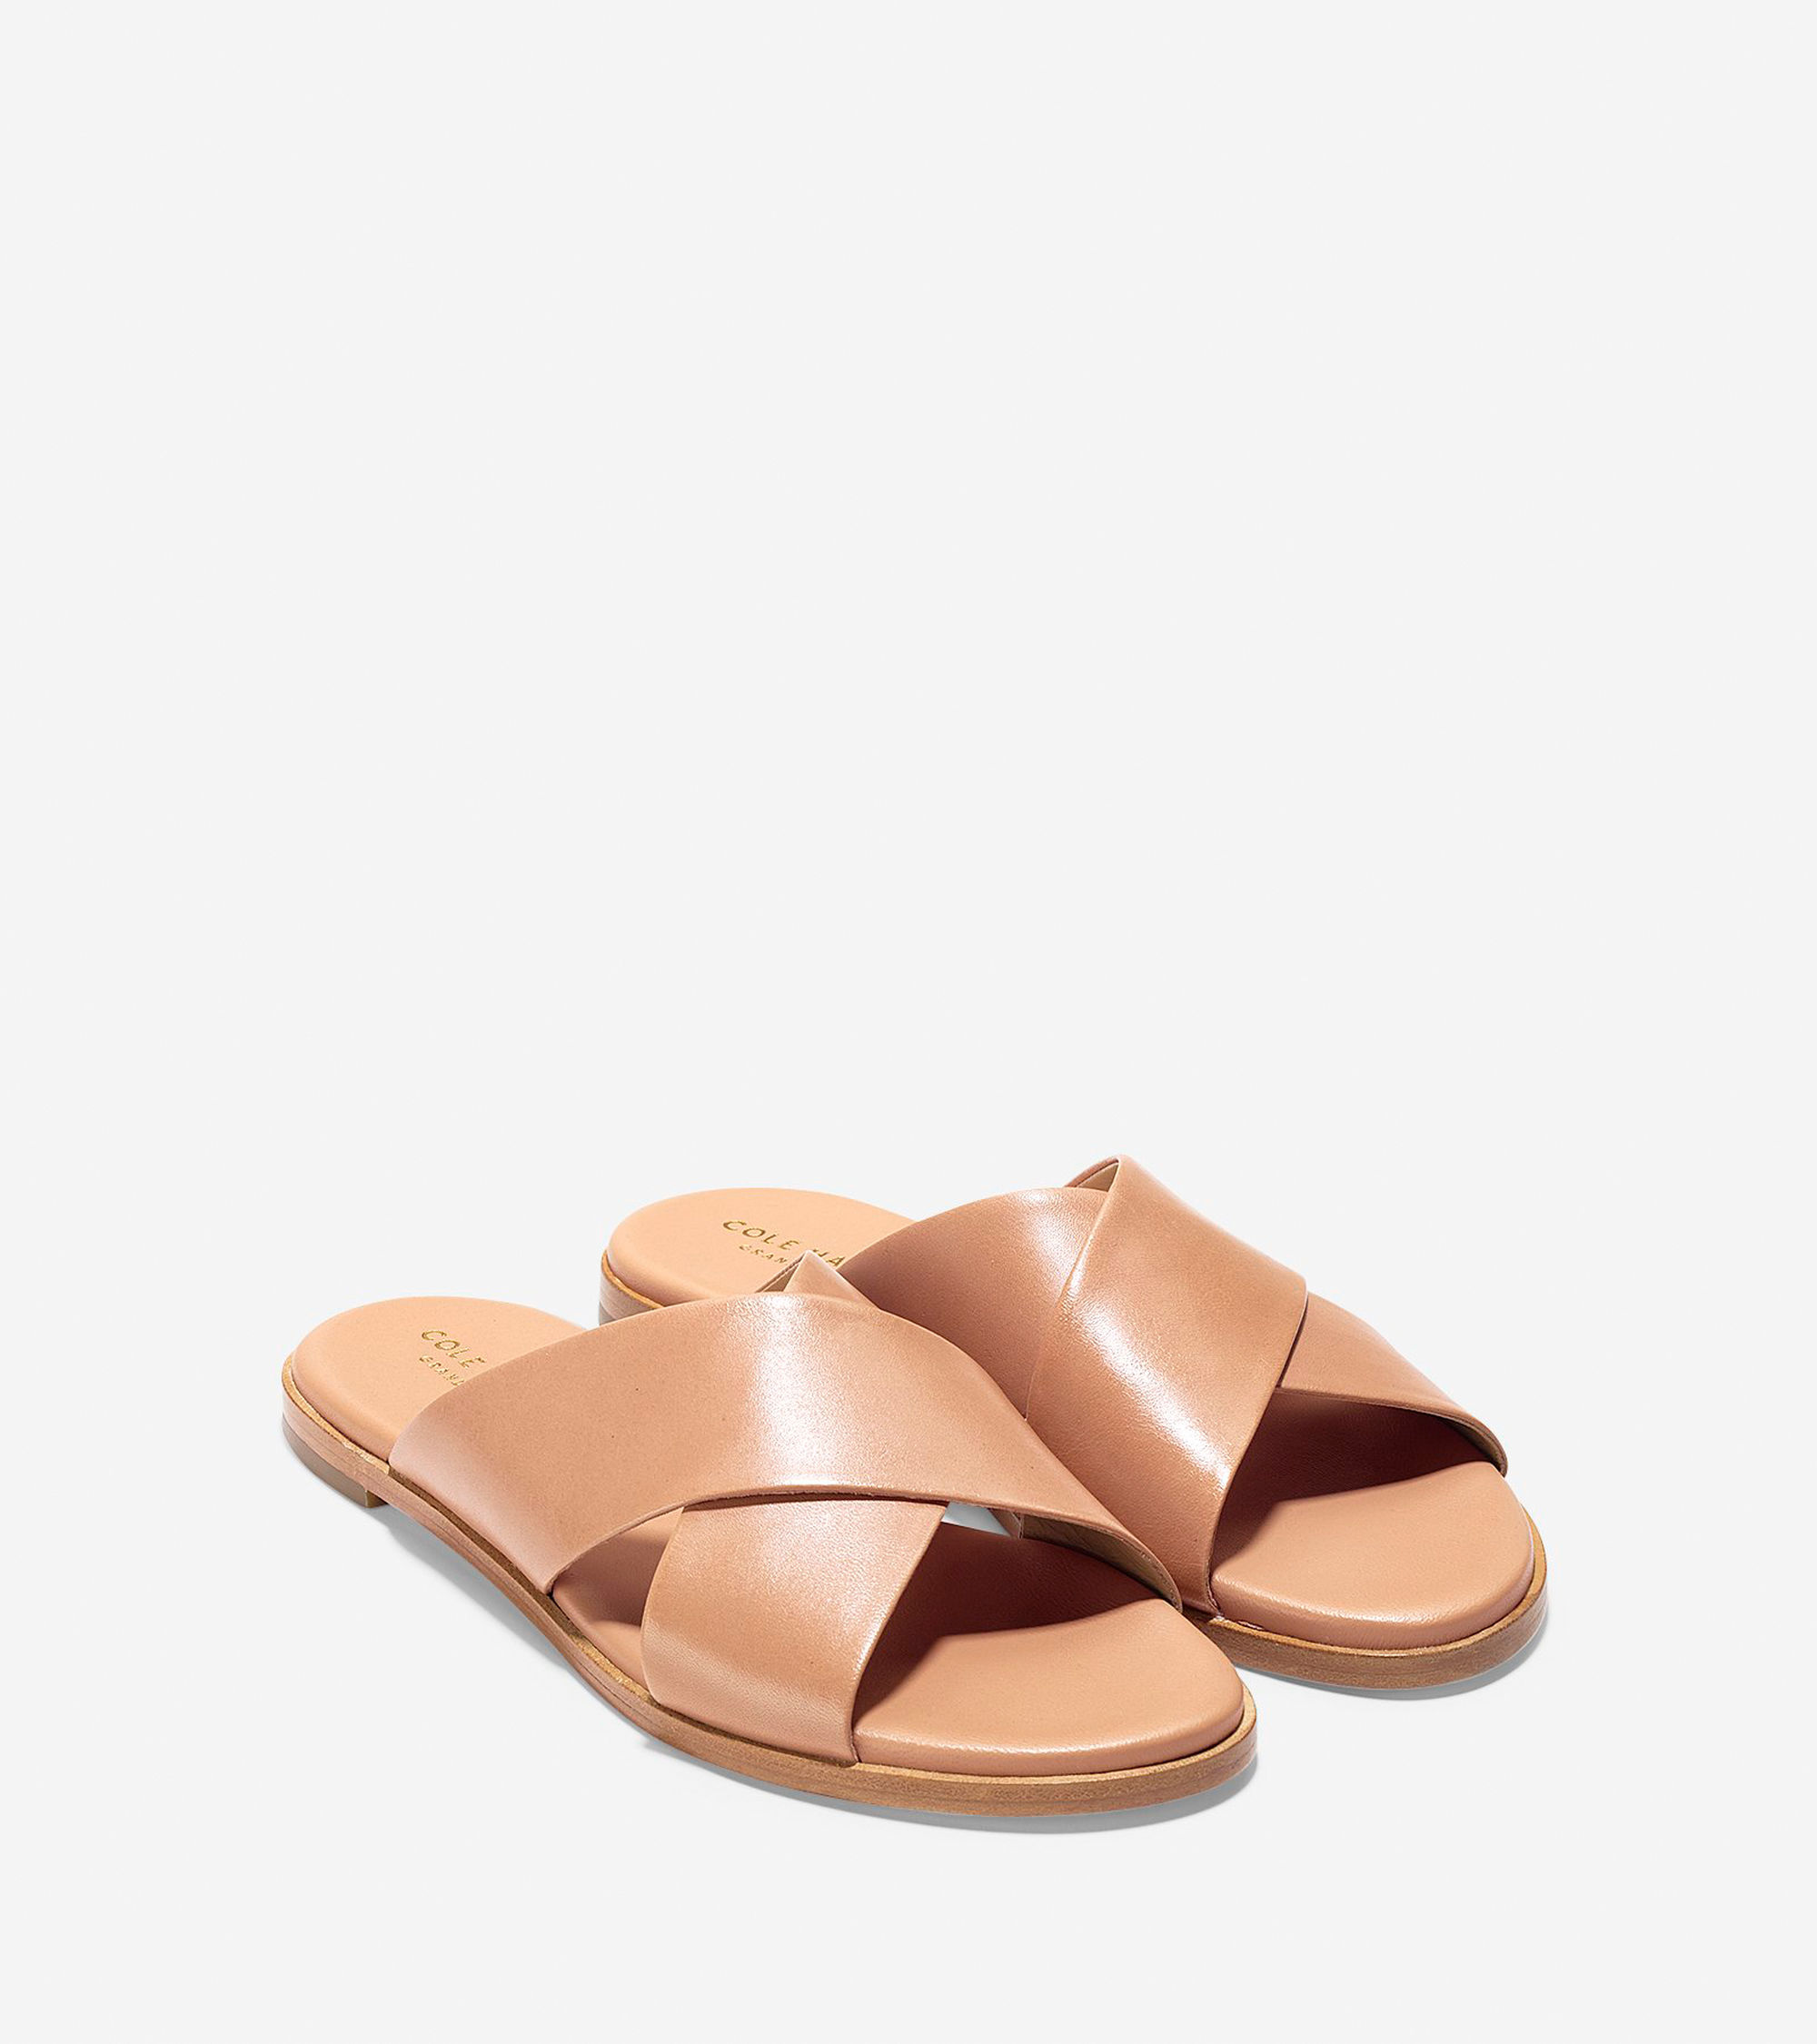 Anica Criss Cross Sandals in Sahara Leather | Cole Haan